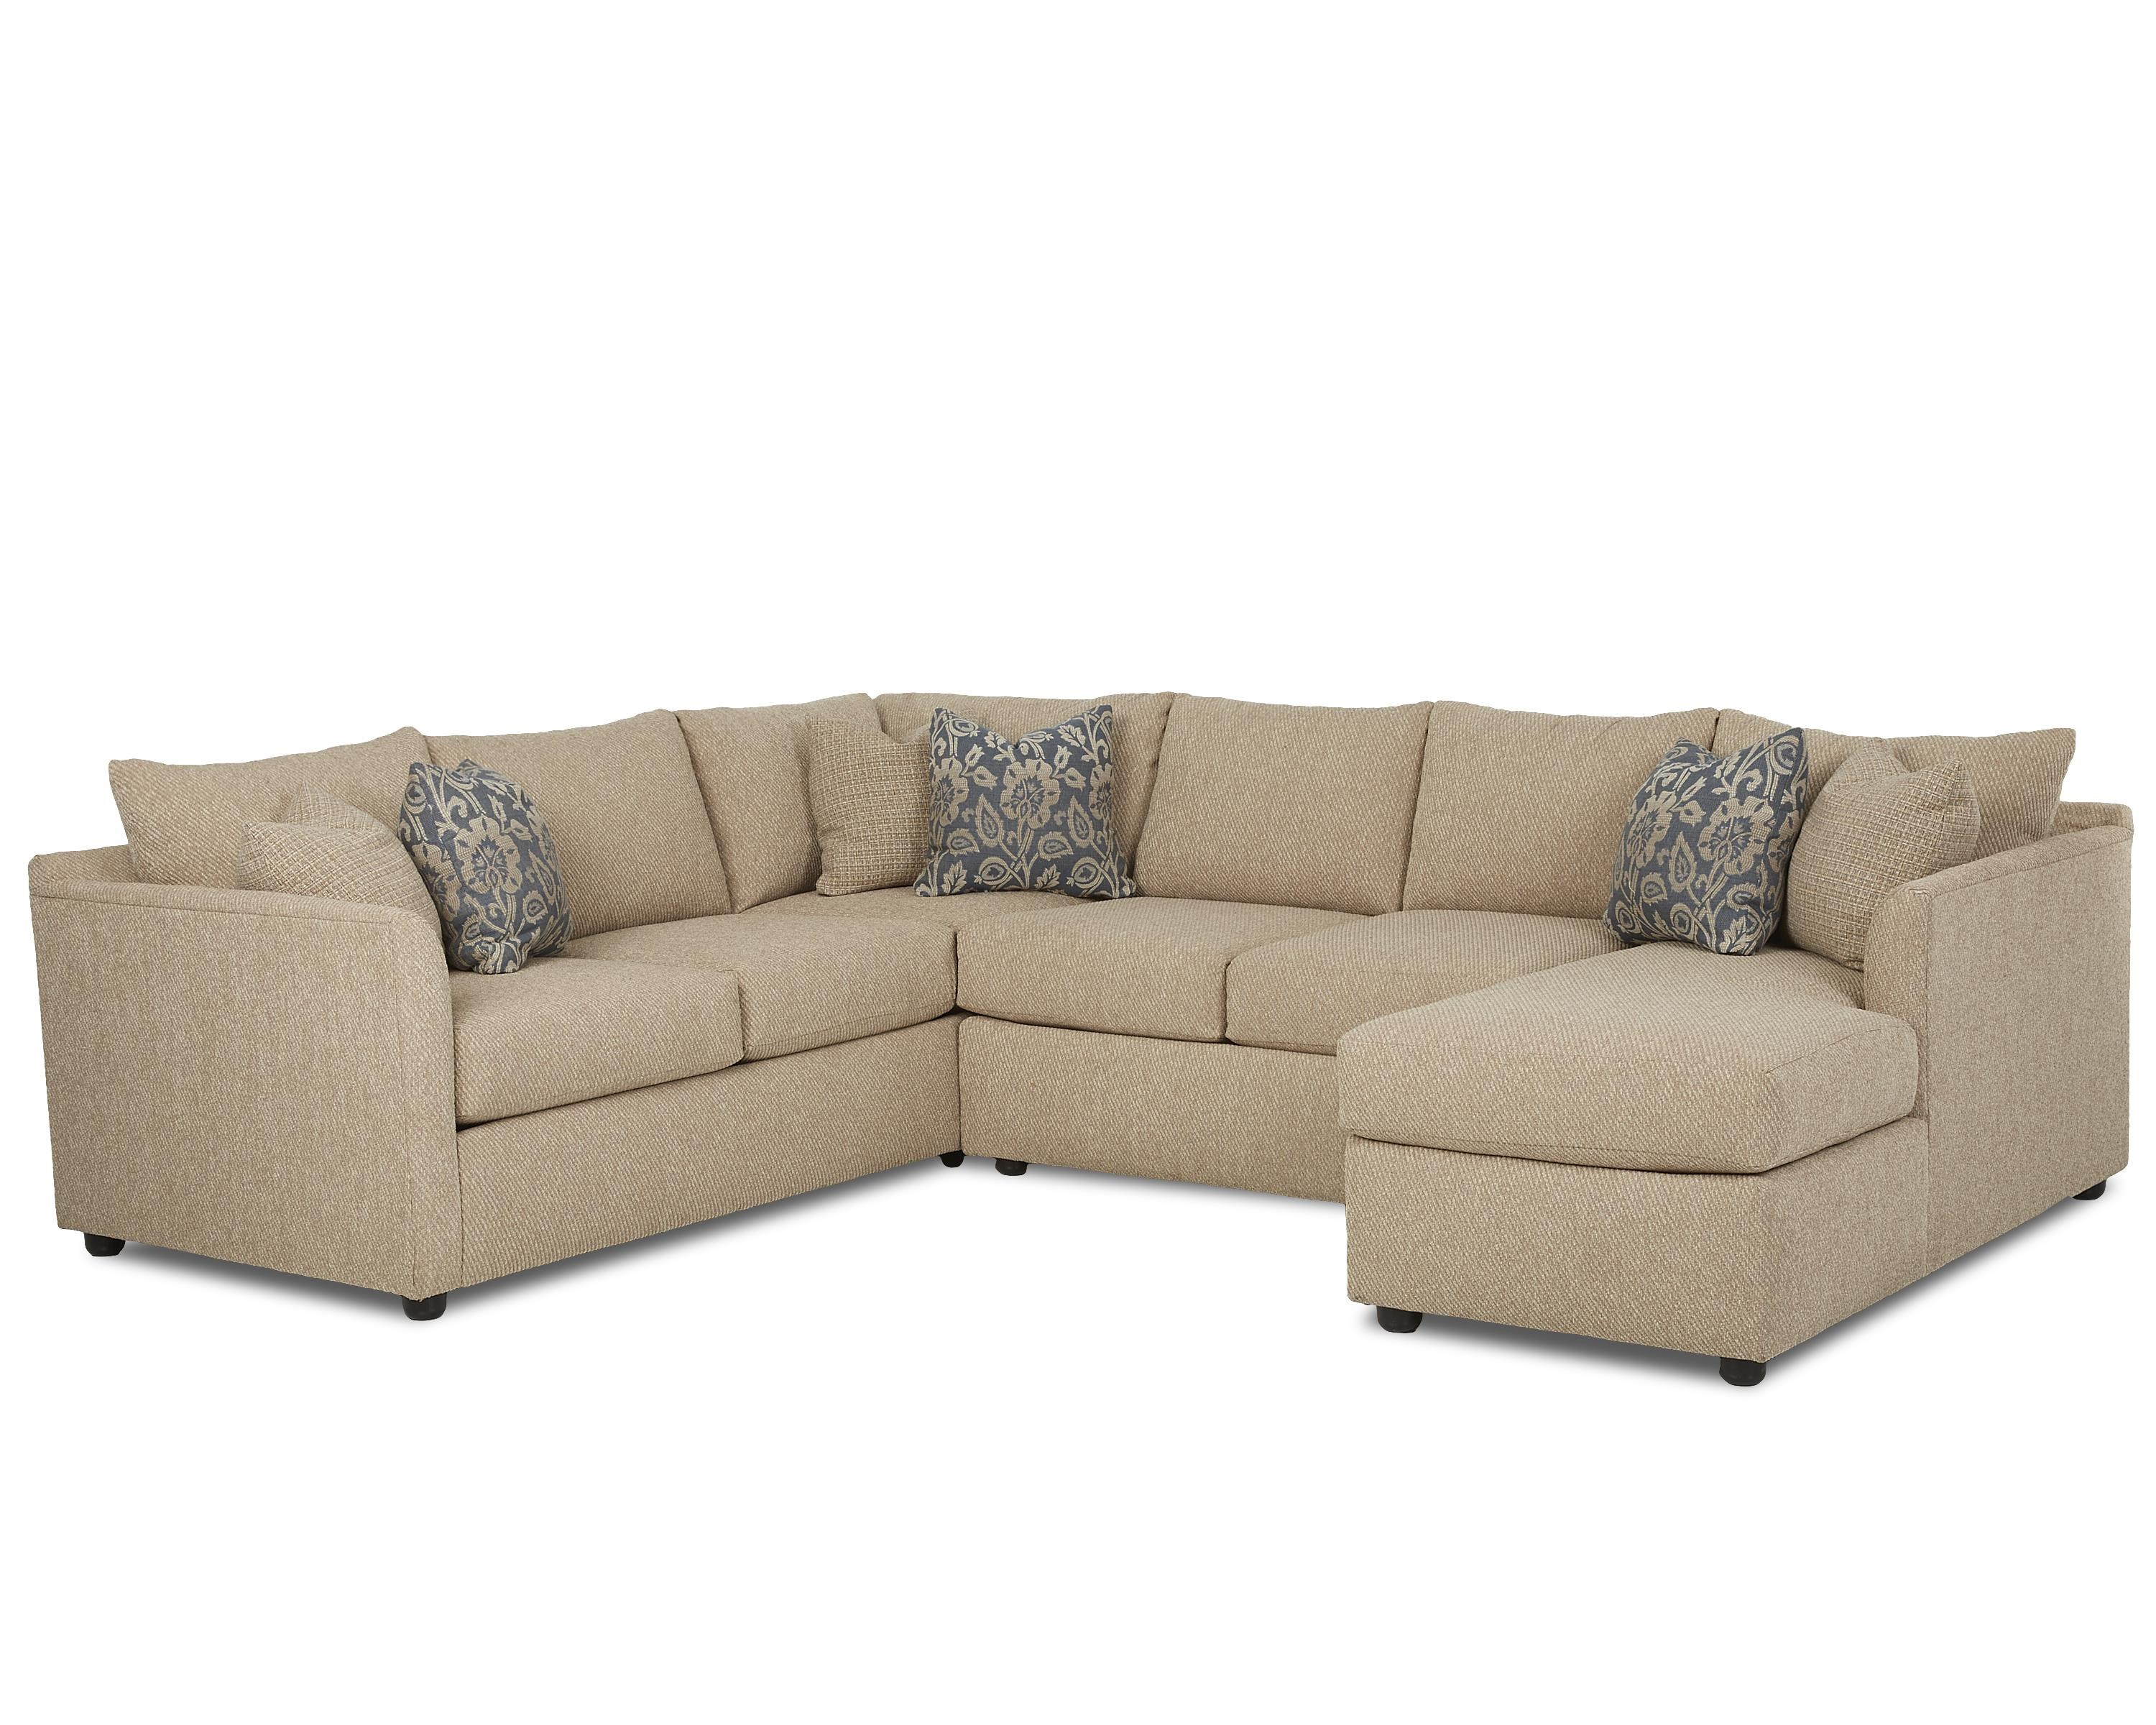 Atlanta Transitional Sectional Sofa With Chaise By Trisha Yearwood Home  Collection By Klaussner